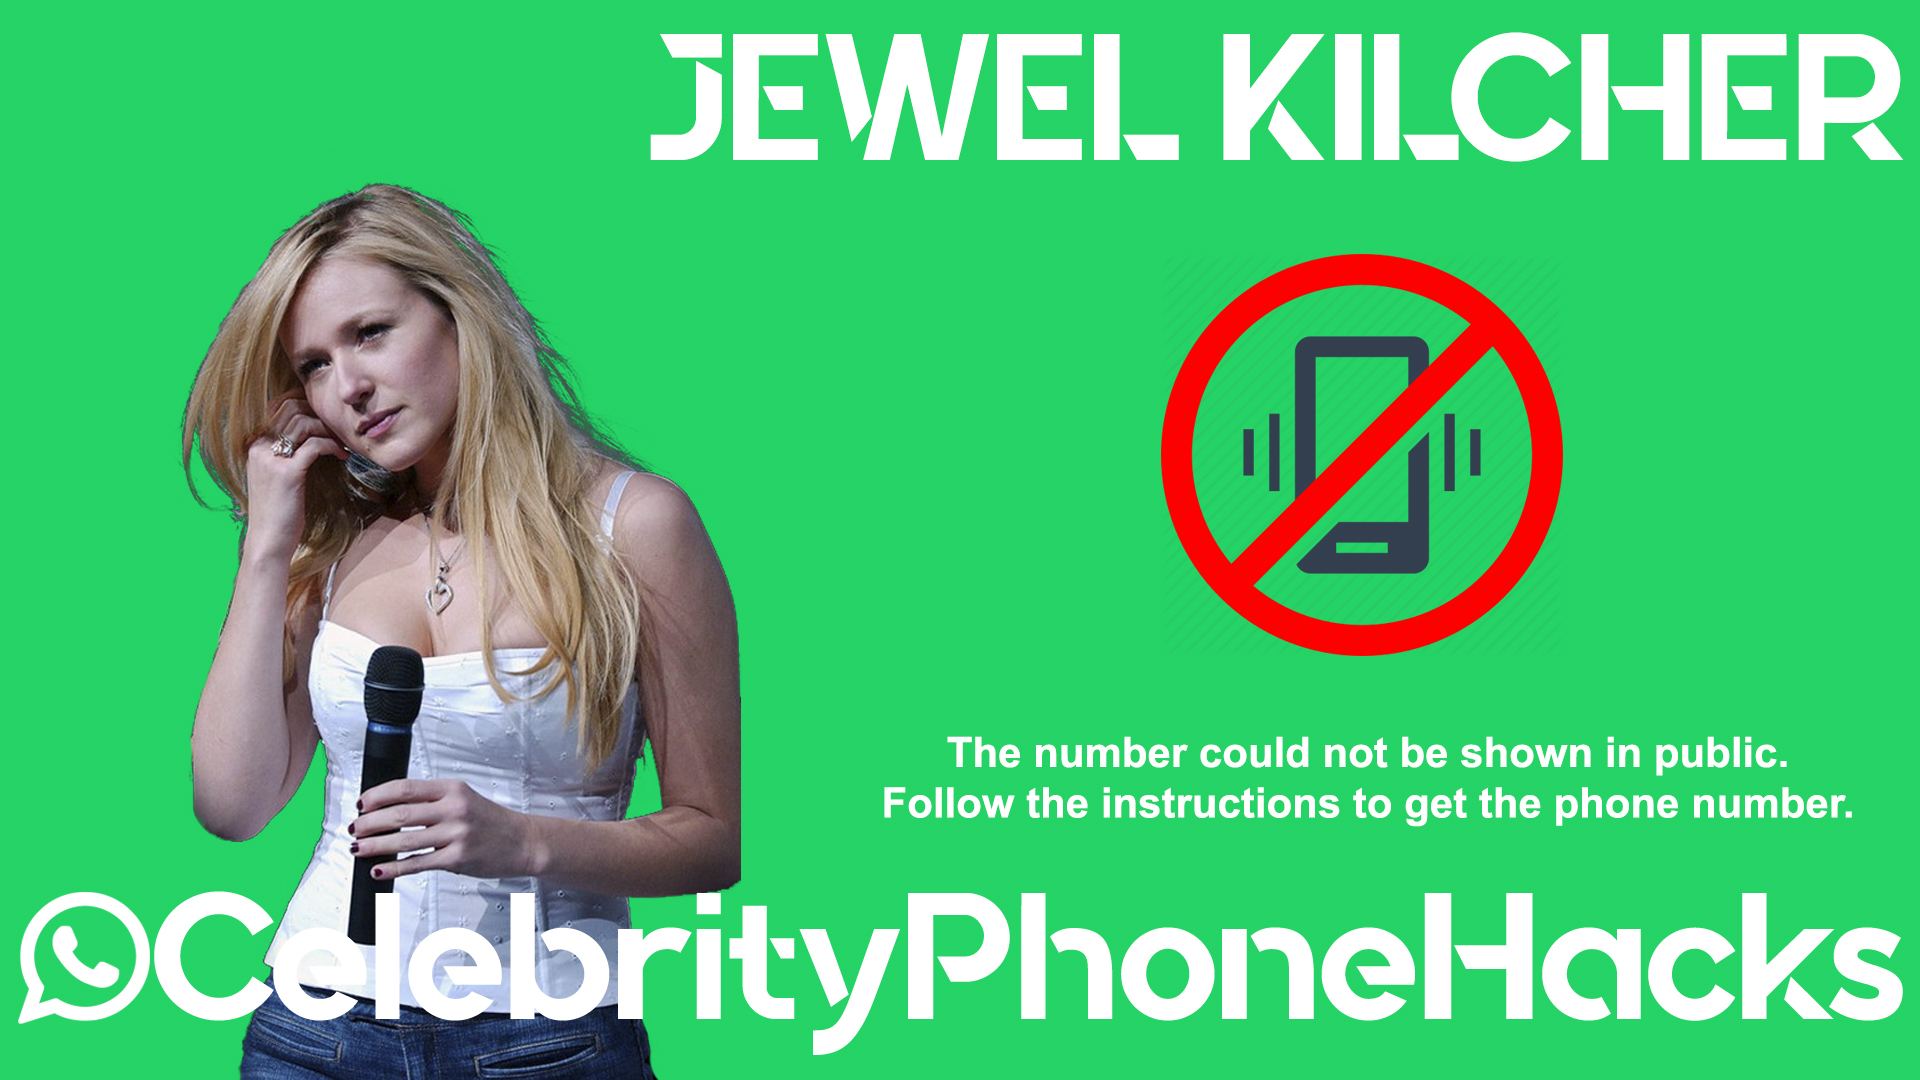 Jewel Kilcher real phone number 2019 whatsapp hacked leaked